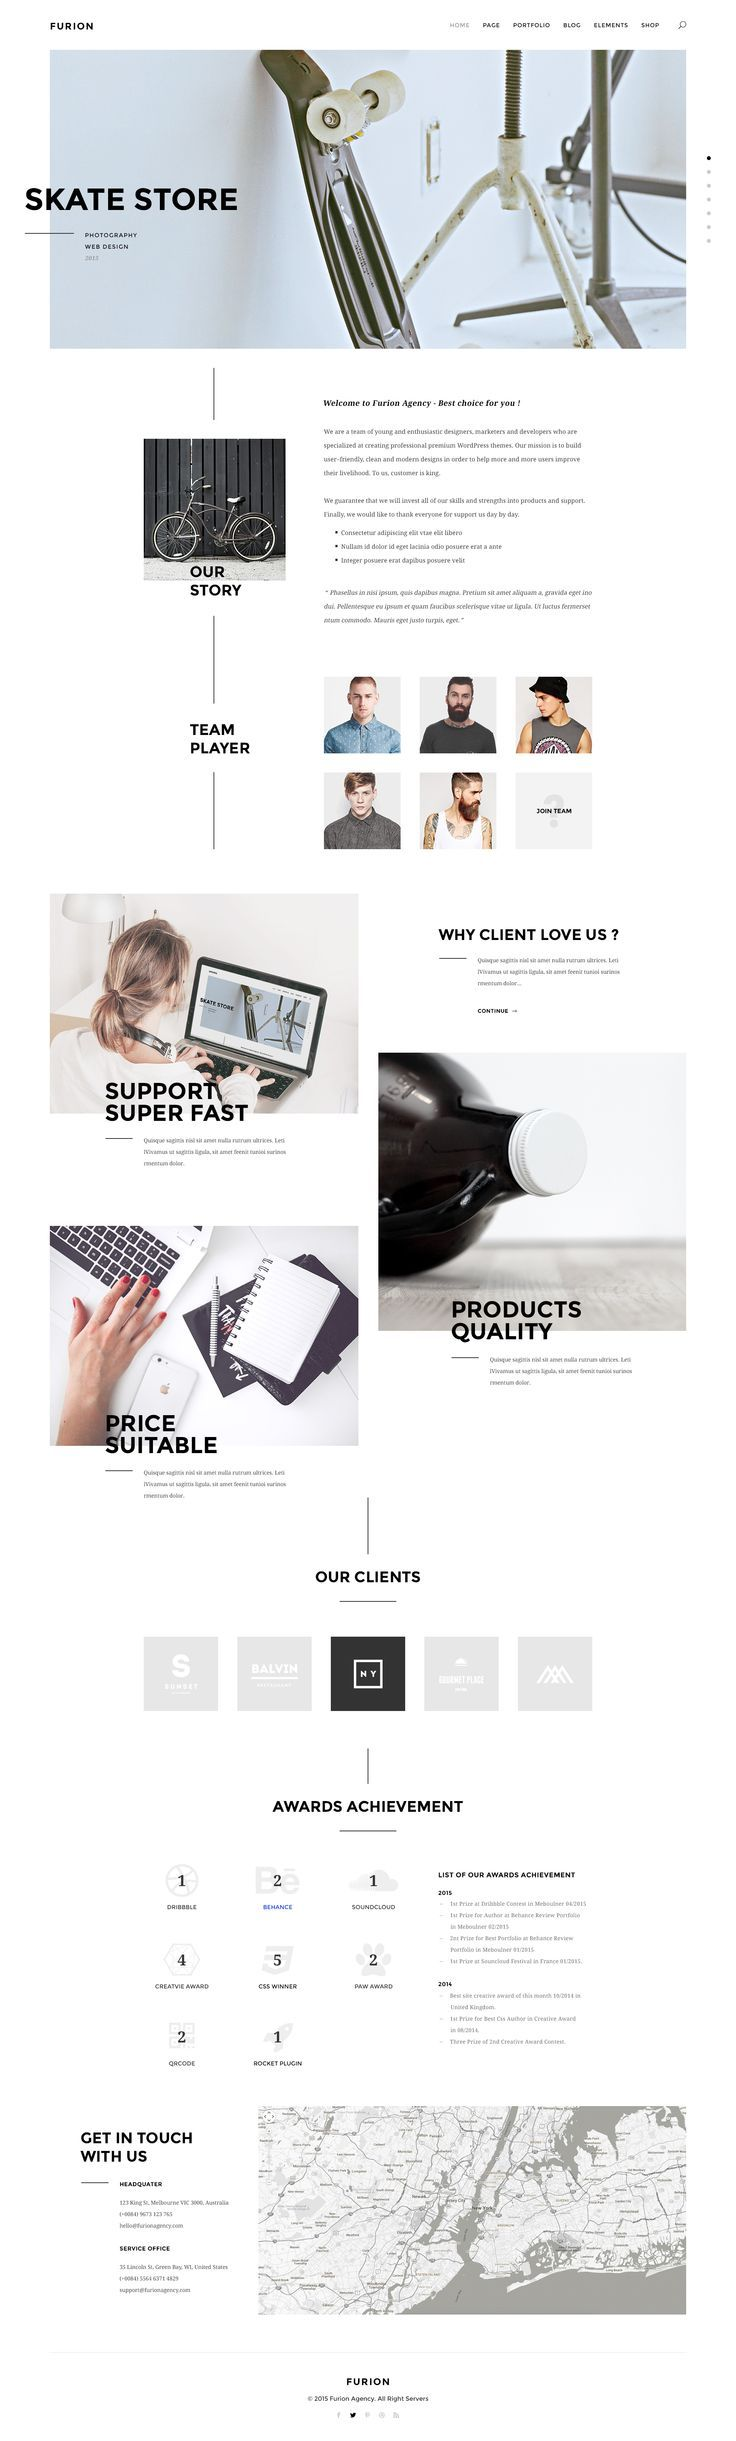 Learn Web Design At Home